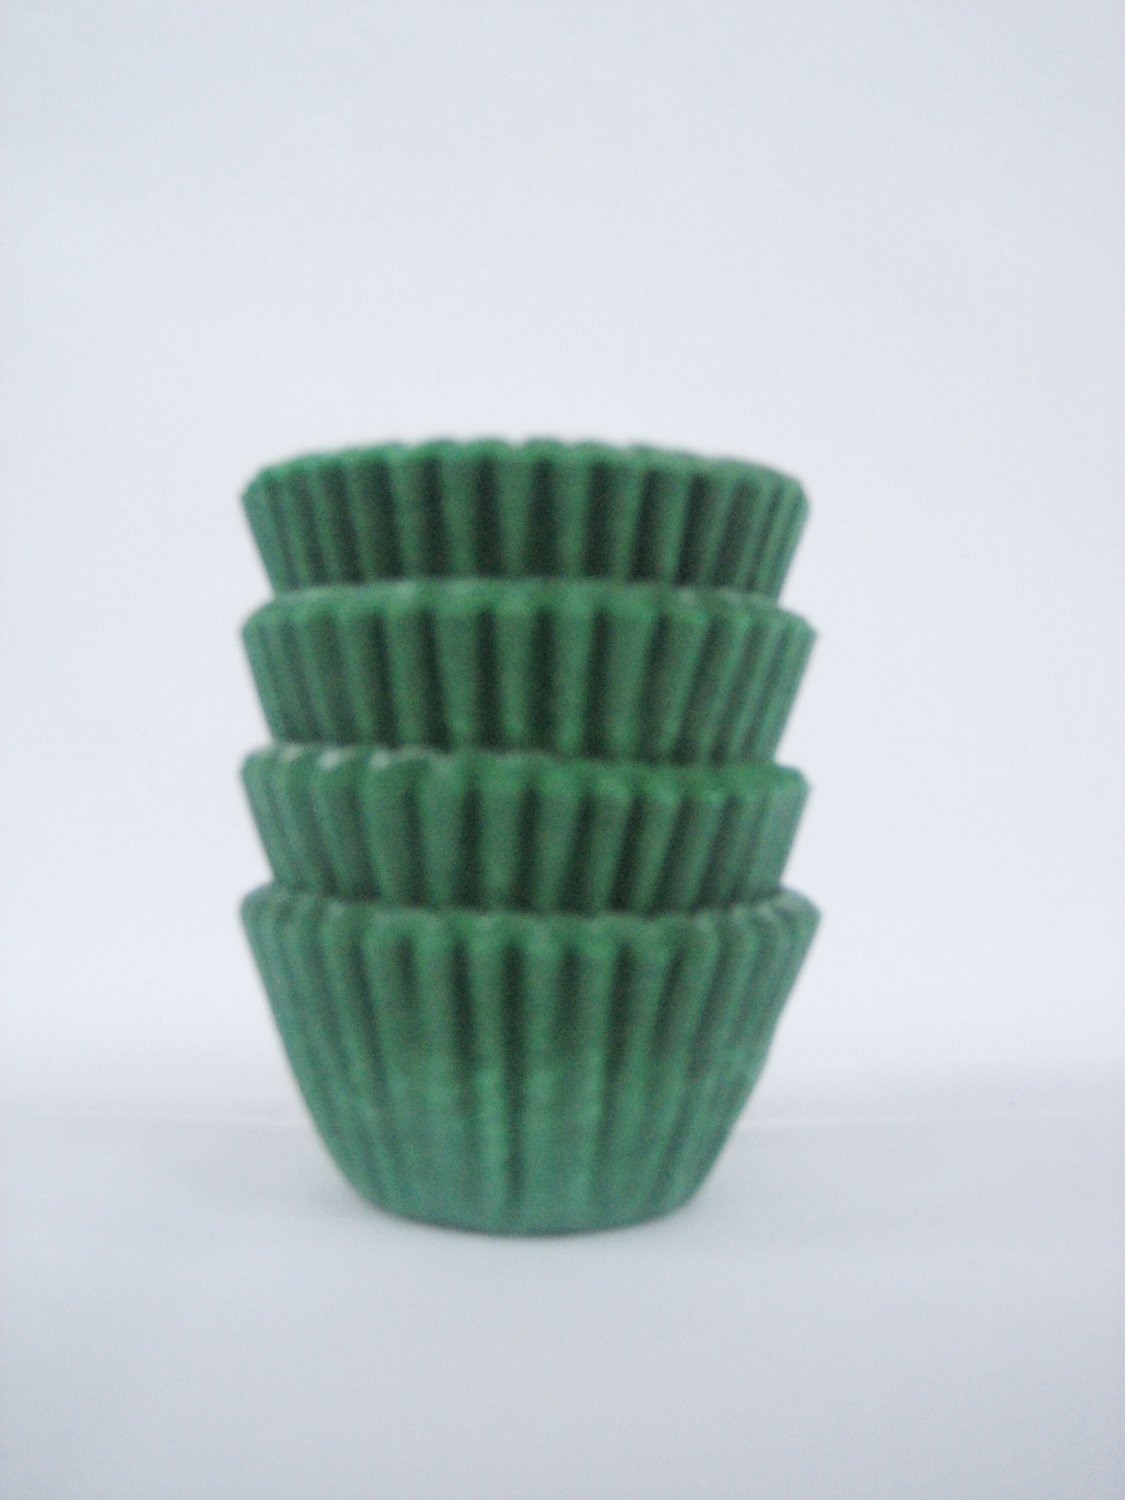 1000pcs Green Mini Paper Cake Cup for Candy/Cookies/Petite/Cake 6cm